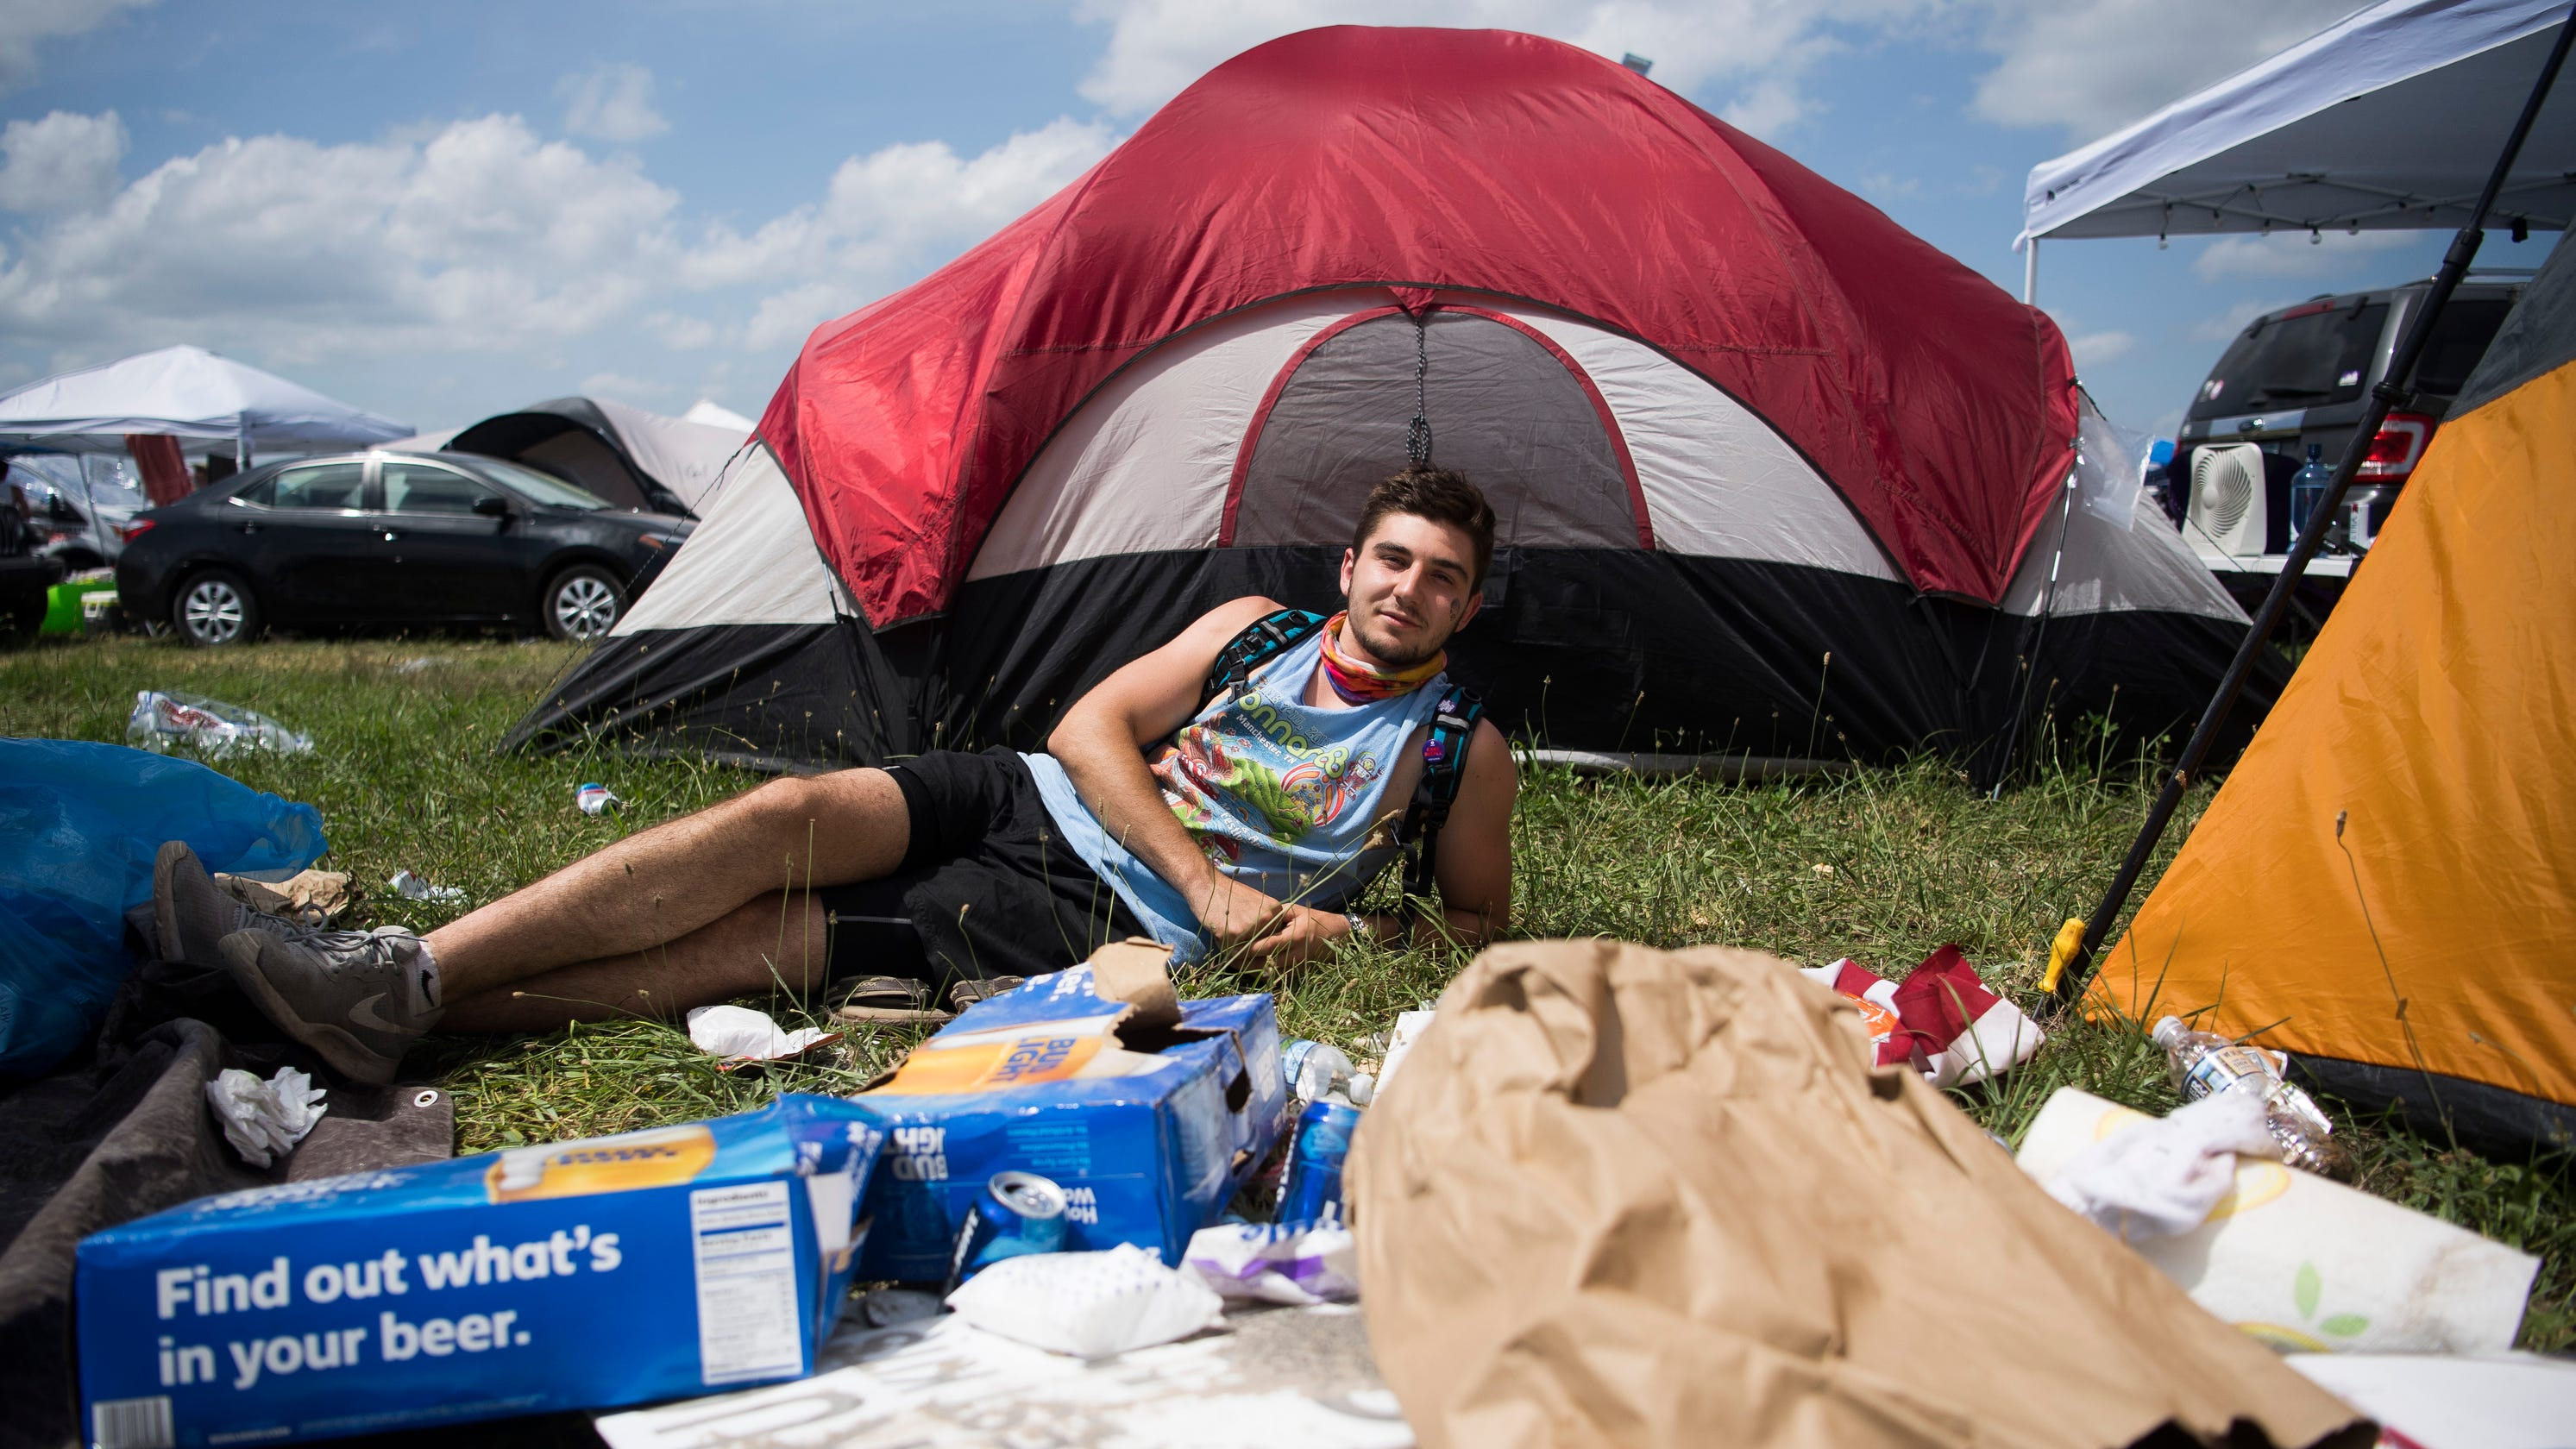 Bonnaroo: Where items left behind go after Tennessee festival ends